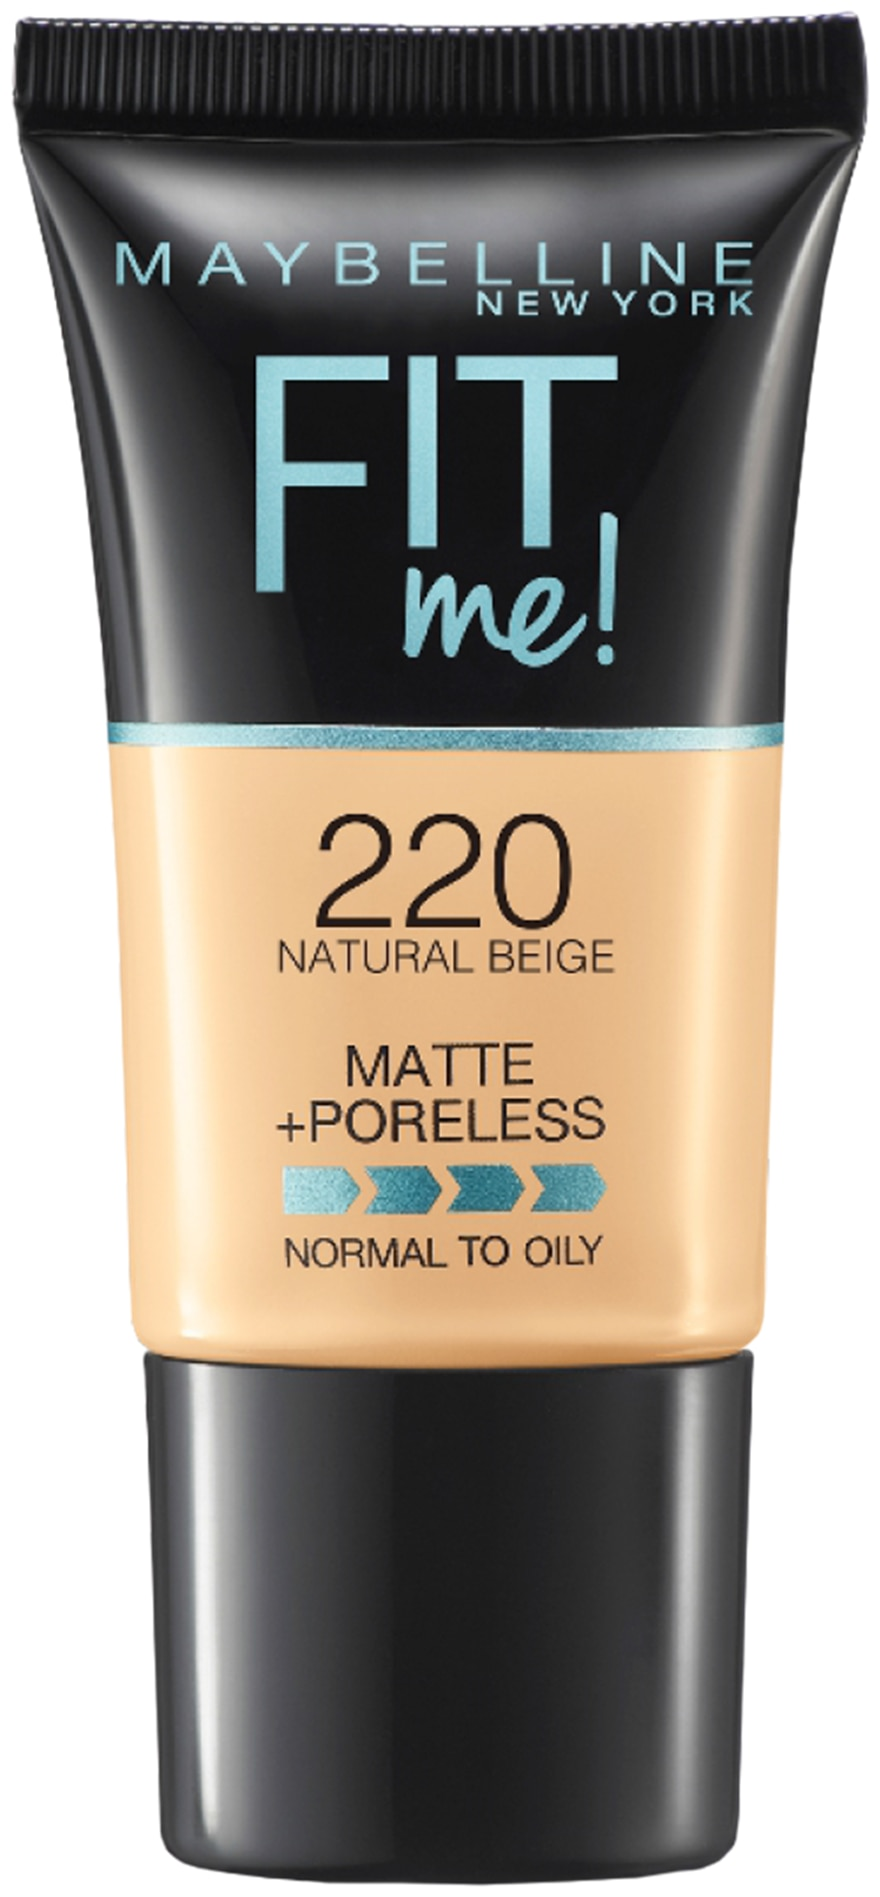 Maybelline New York Fit Me Matte+Poreless Liquid Foundation Tube;220 Natural Beige 18gm